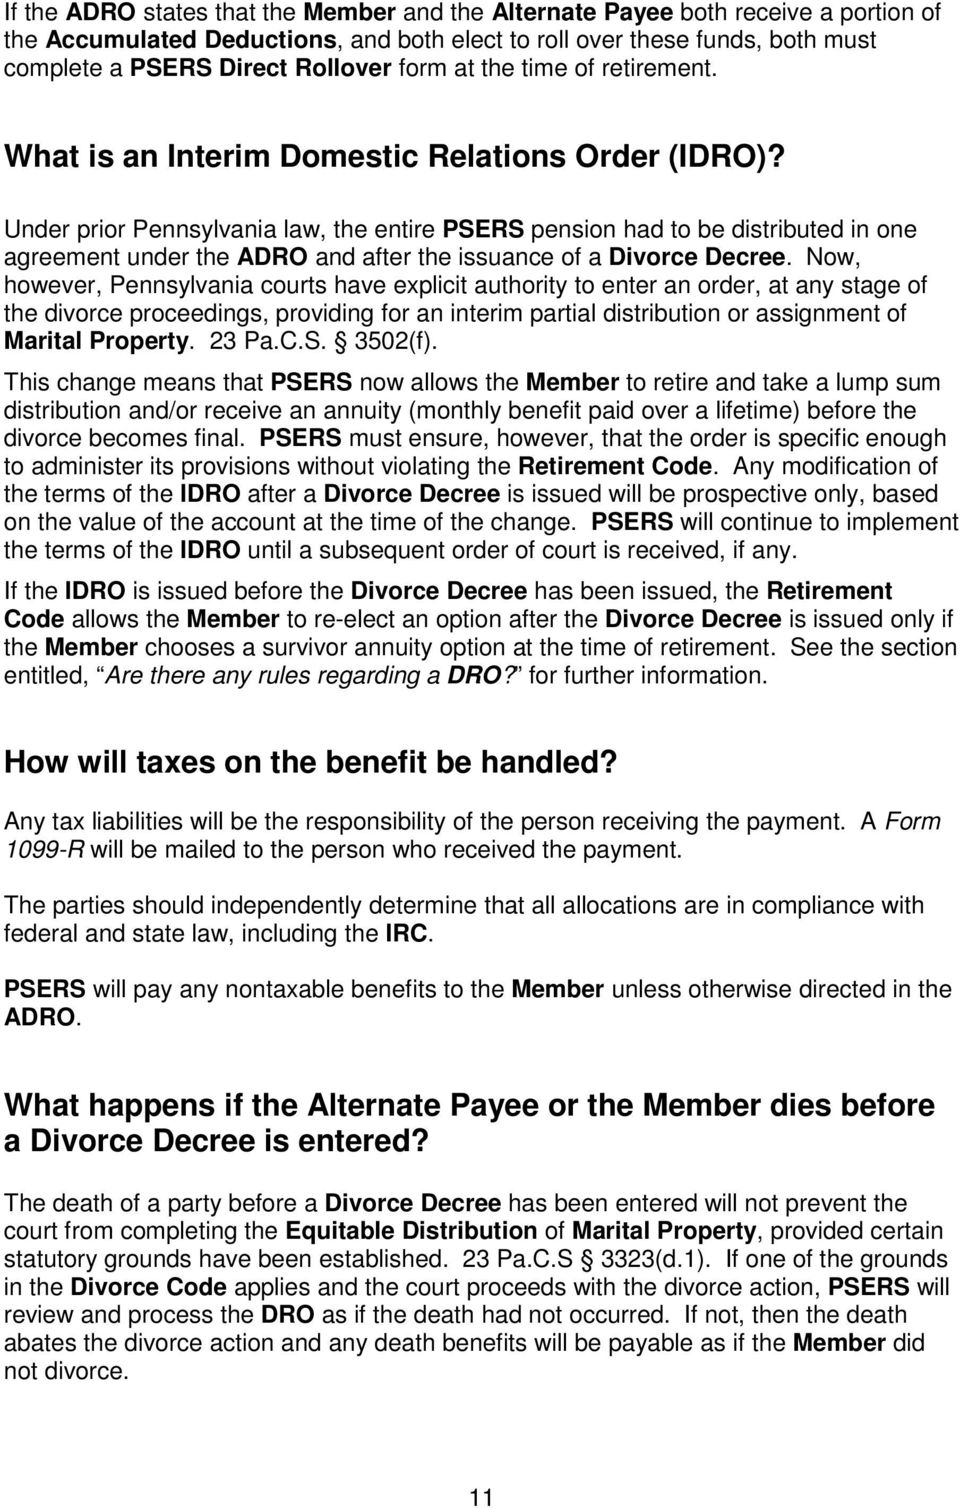 Under prior Pennsylvania law, the entire PSERS pension had to be distributed in one agreement under the ADRO and after the issuance of a Divorce Decree.